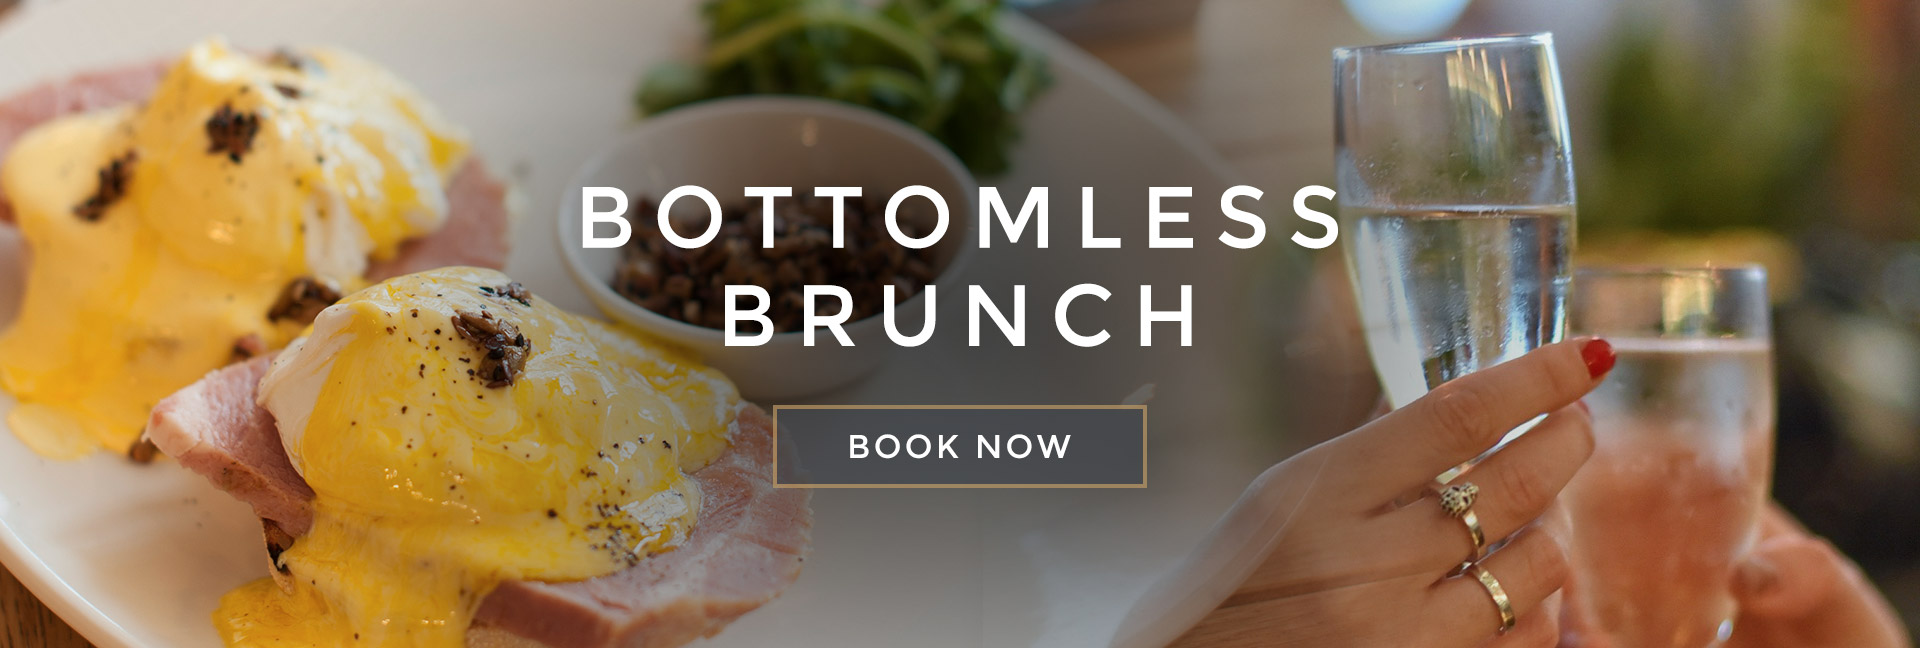 Bottomless Brunch at All Bar One Chester - Book now